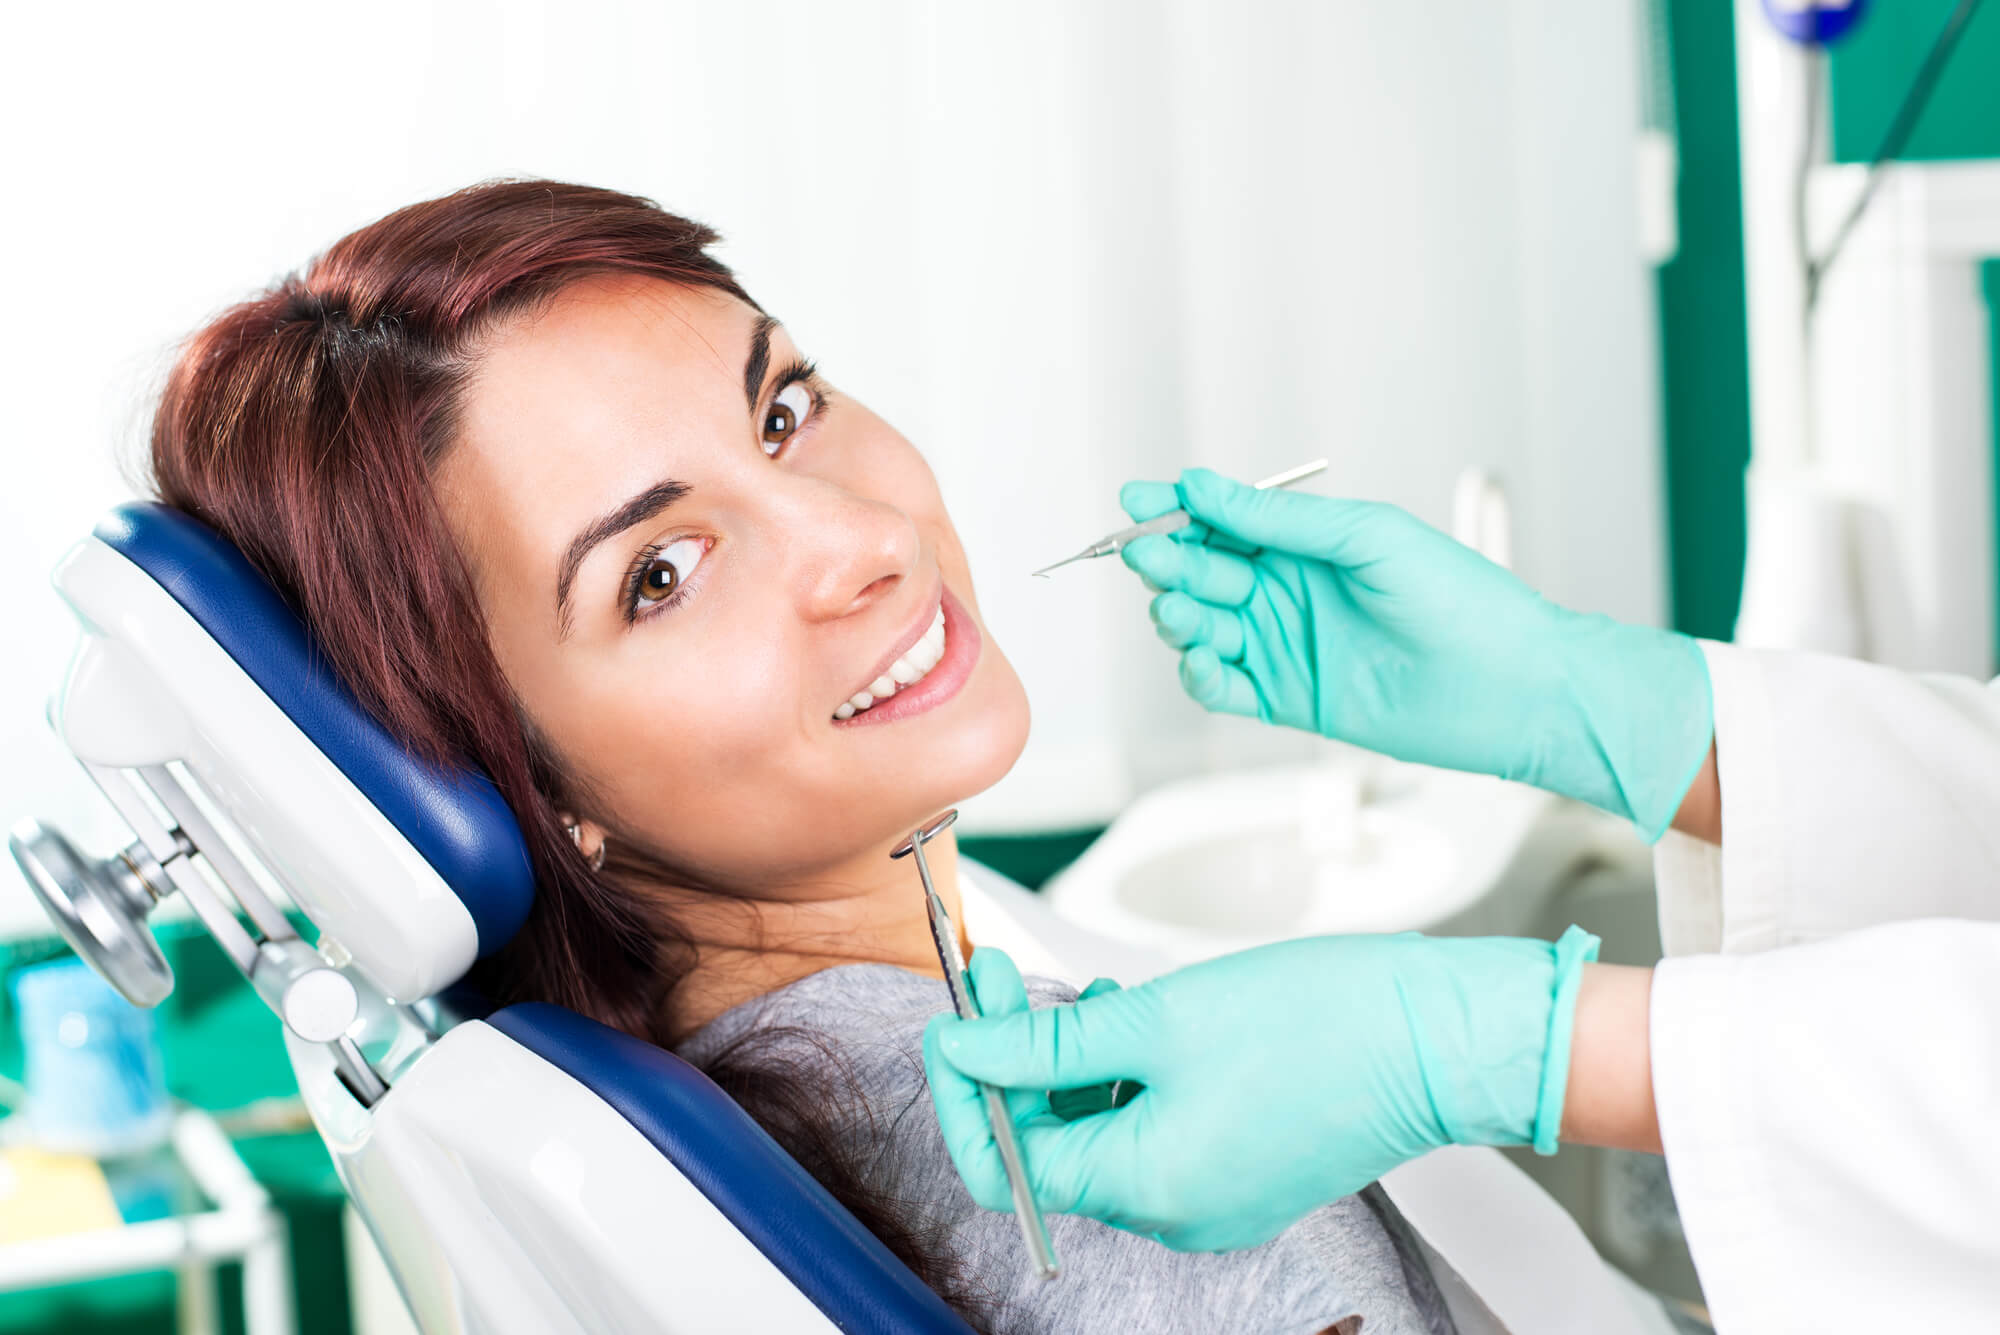 who offers the best sedation dentistry simpsonville sc?